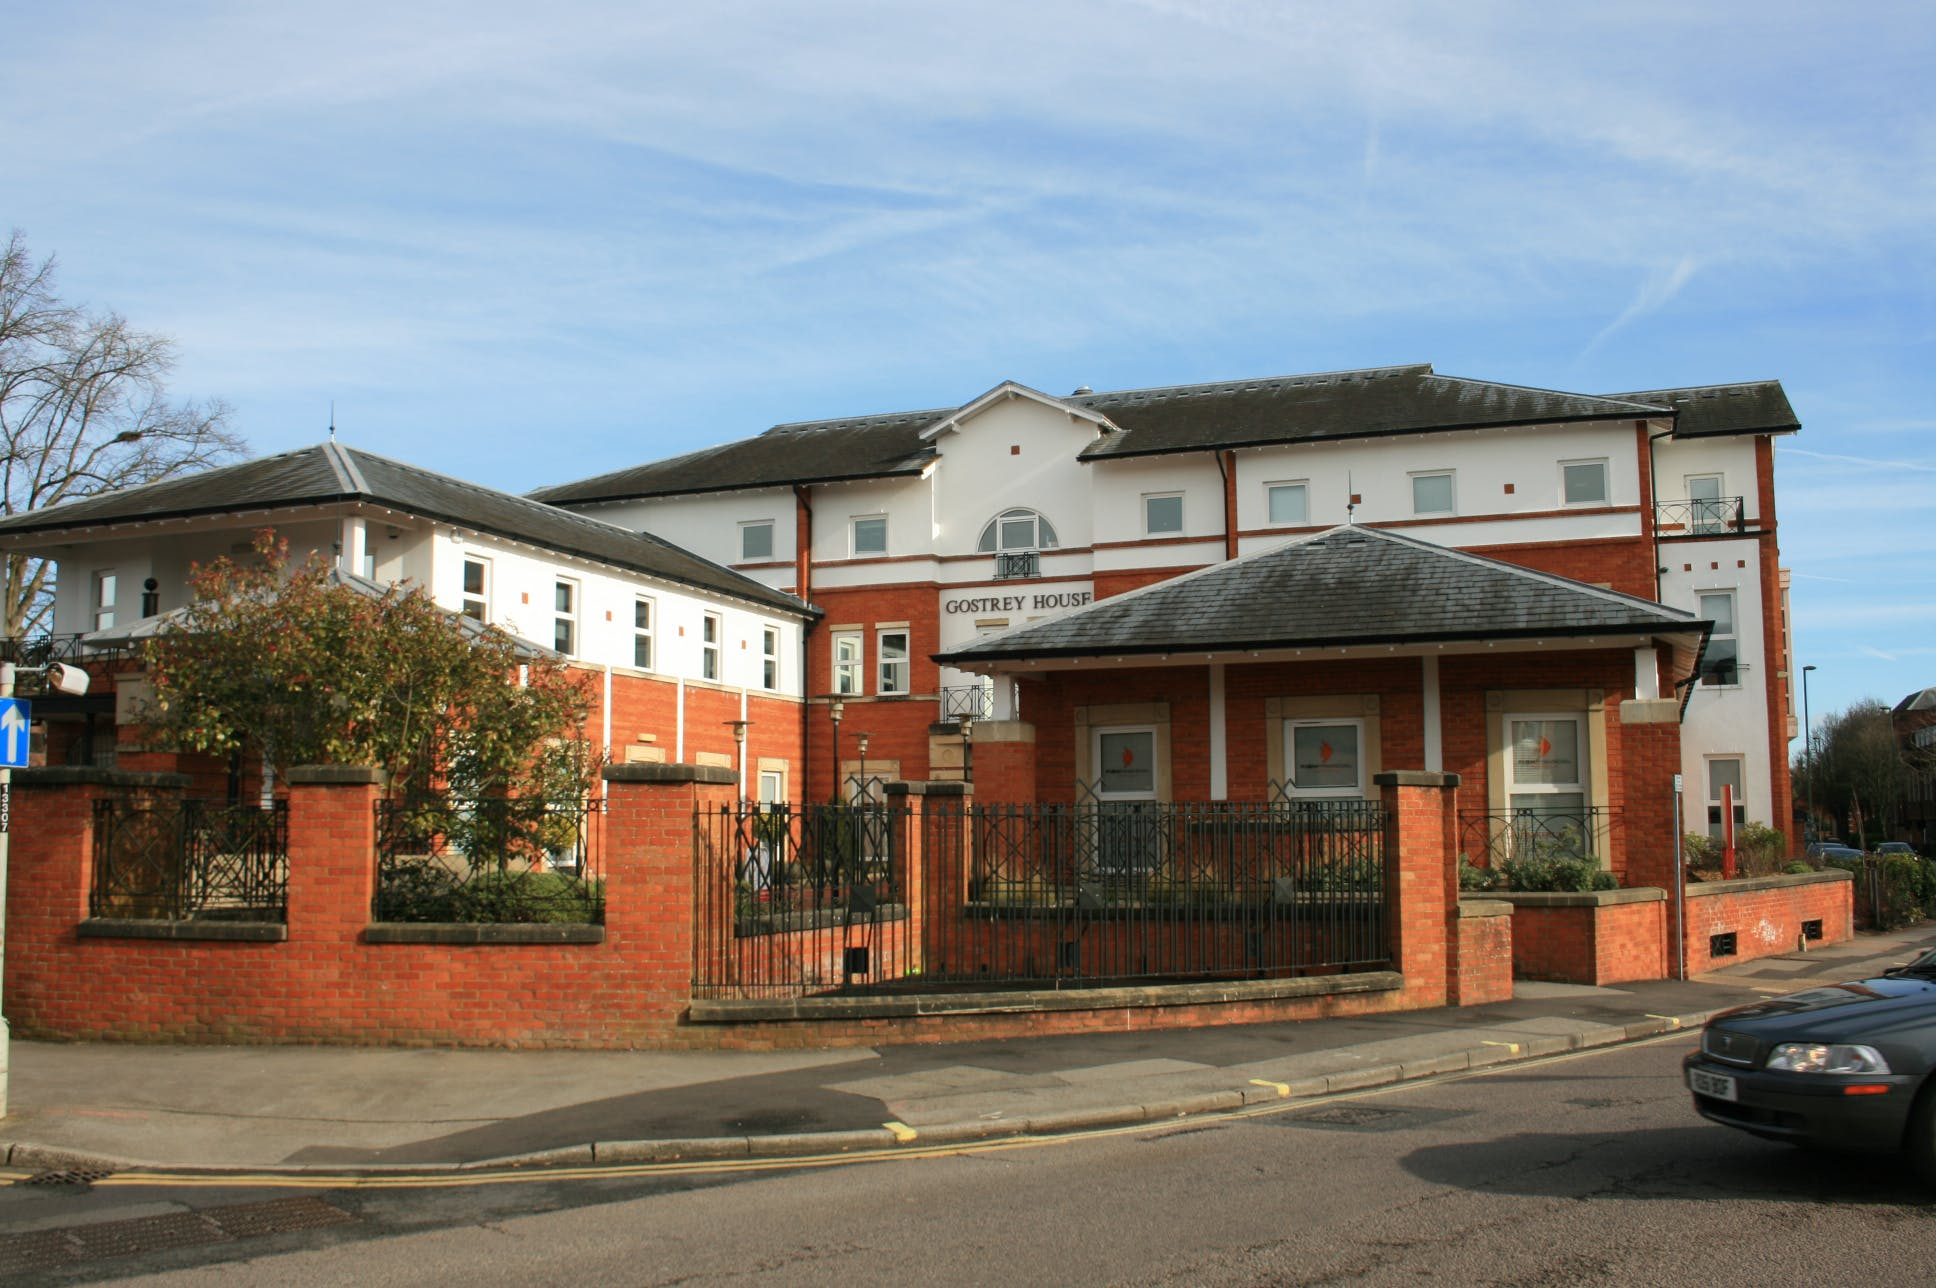 Suite A Gostrey House, Union Road, Farnham, Offices To Let - Gostrey House.JPG